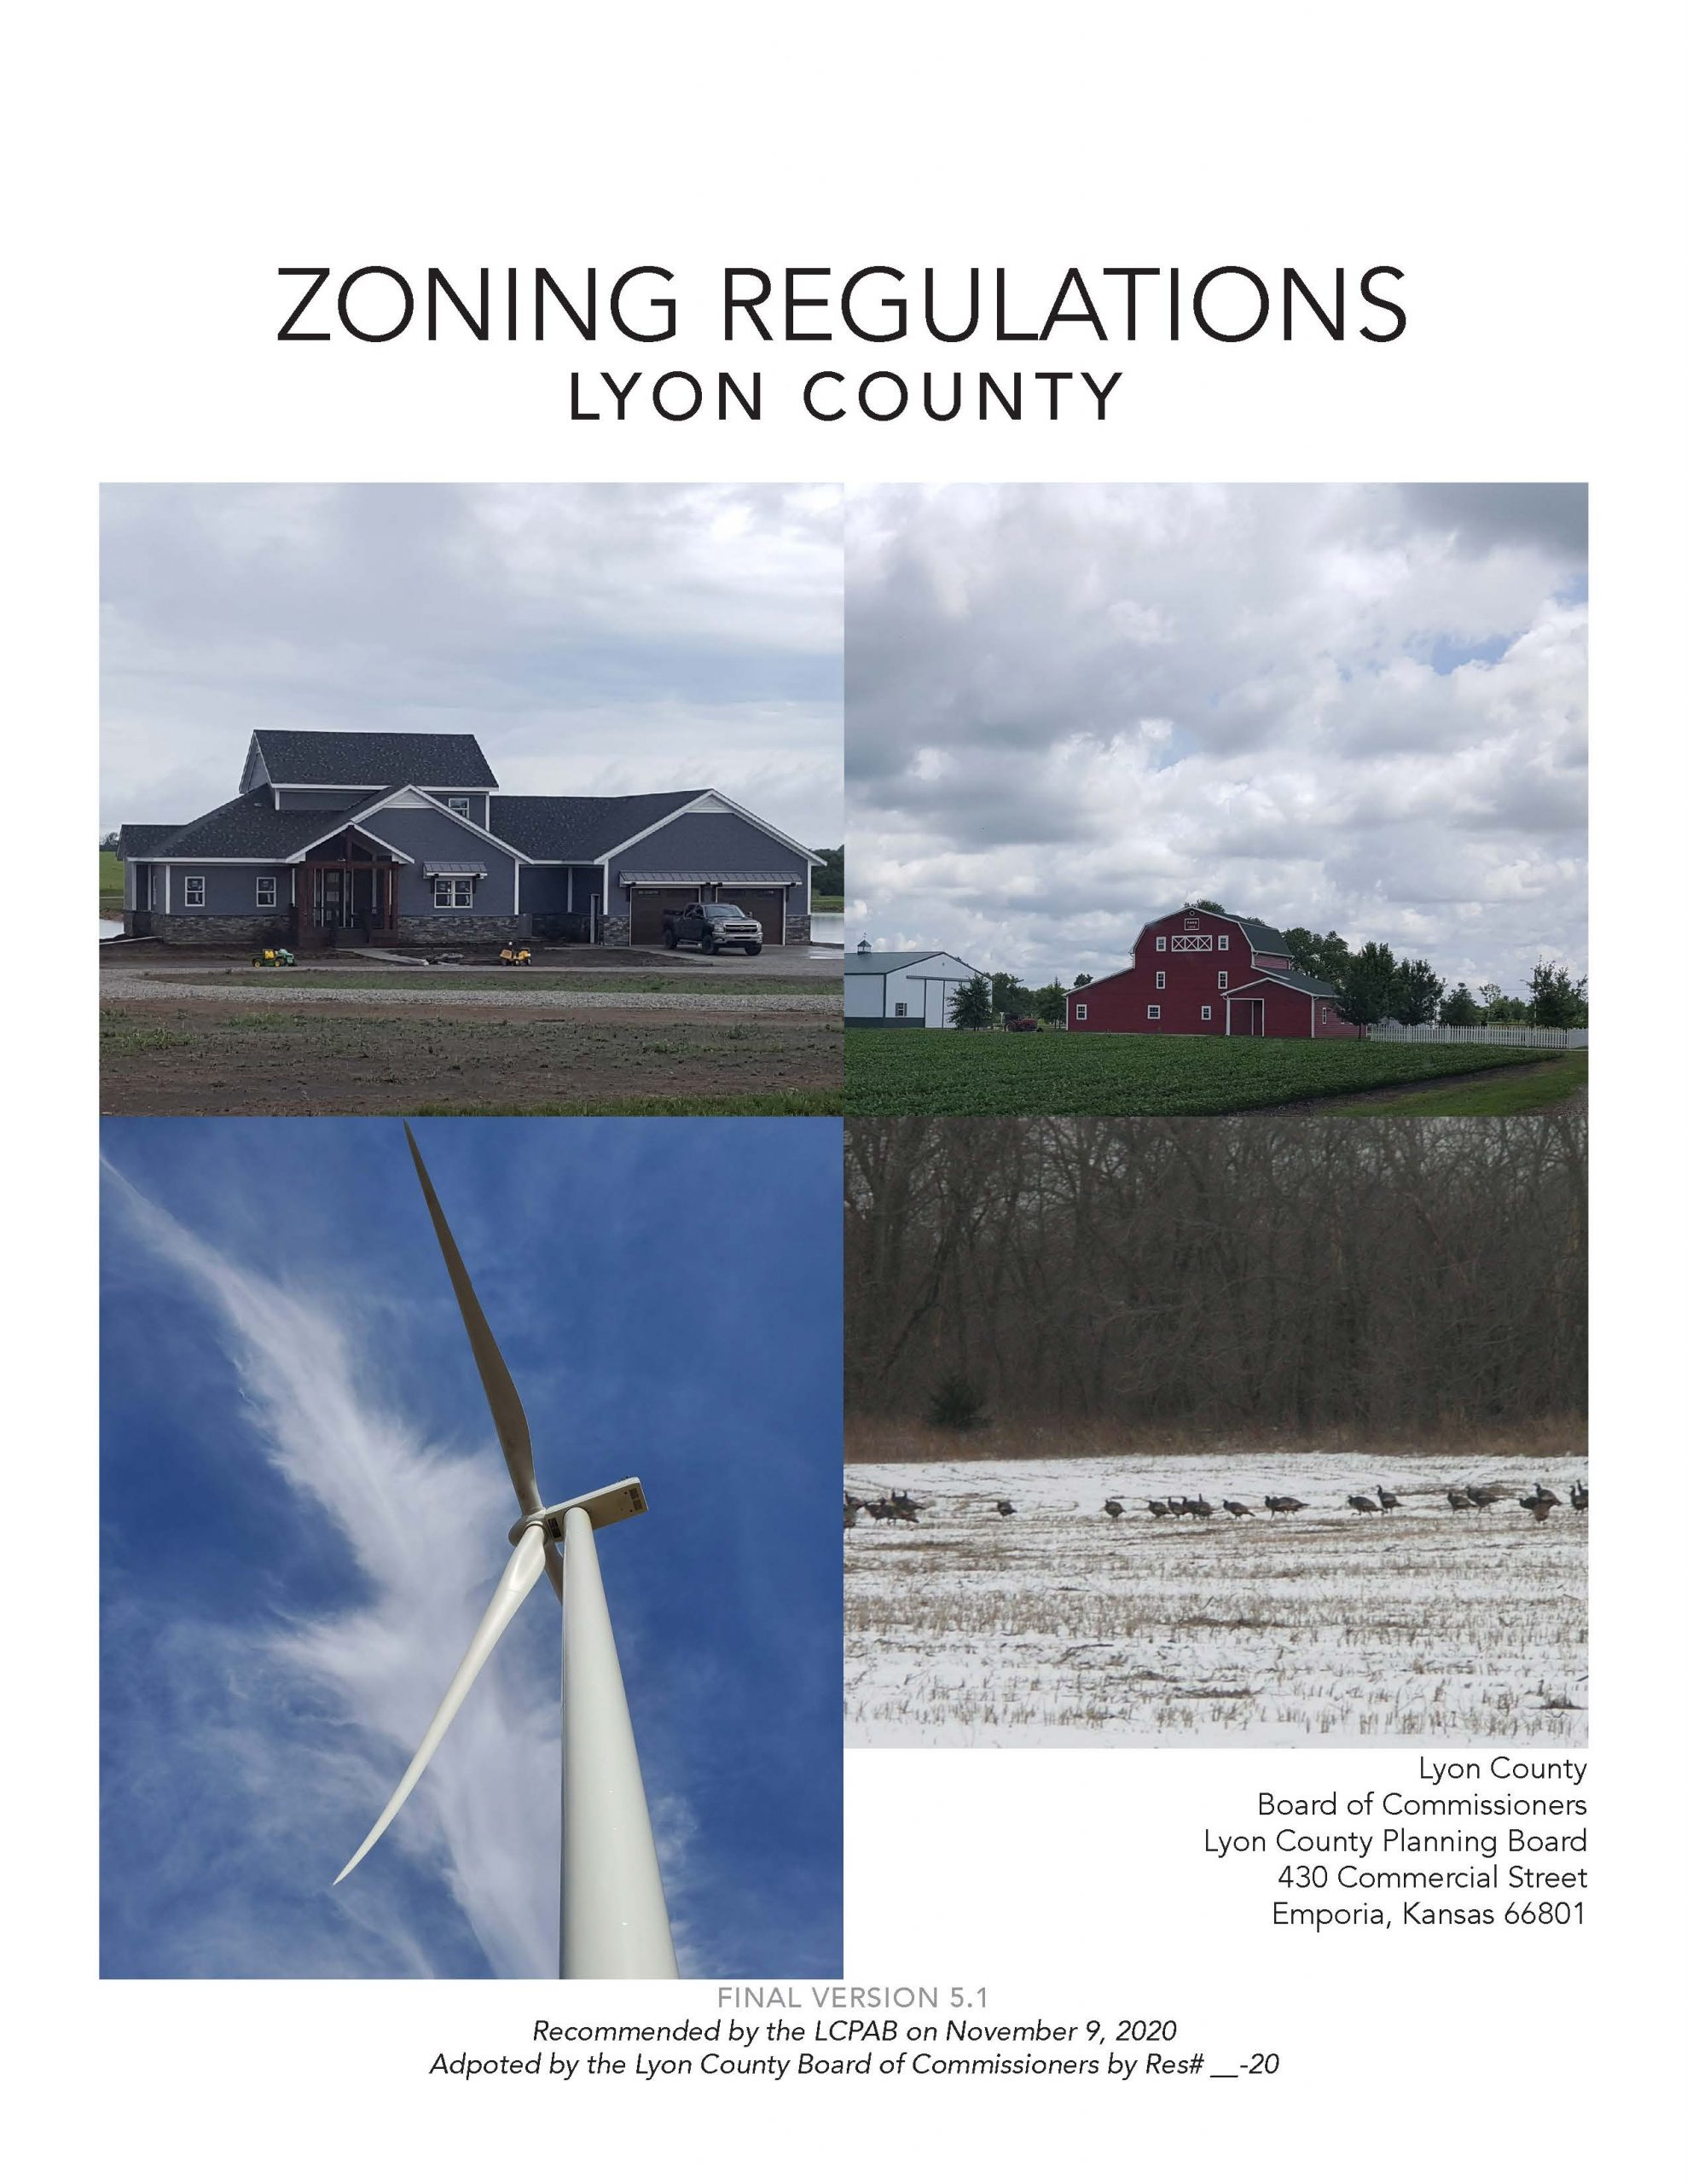 New Zoning Regulations Draft